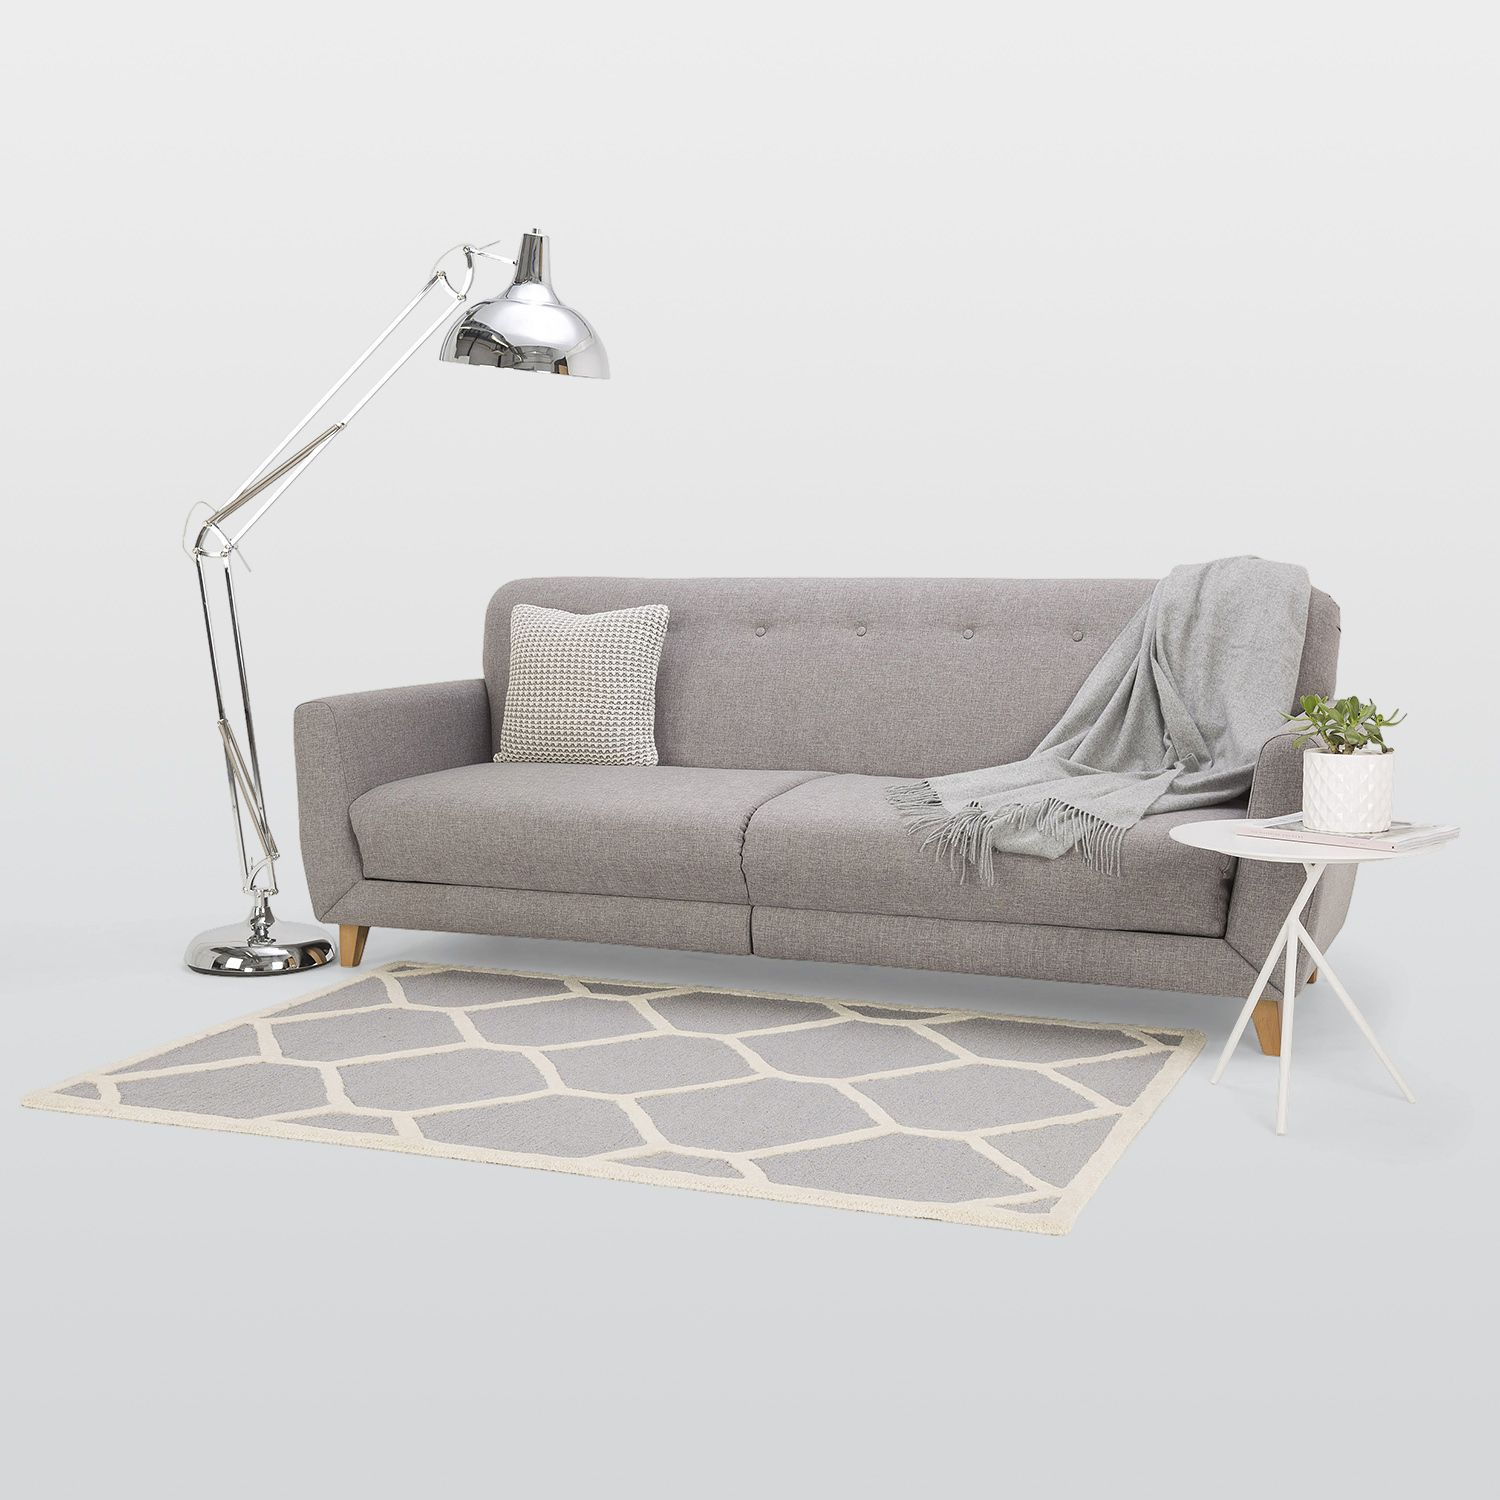 Sydney 3 Seater Fabric Sofa Bed – Next Day Delivery Sydney 3 Seater